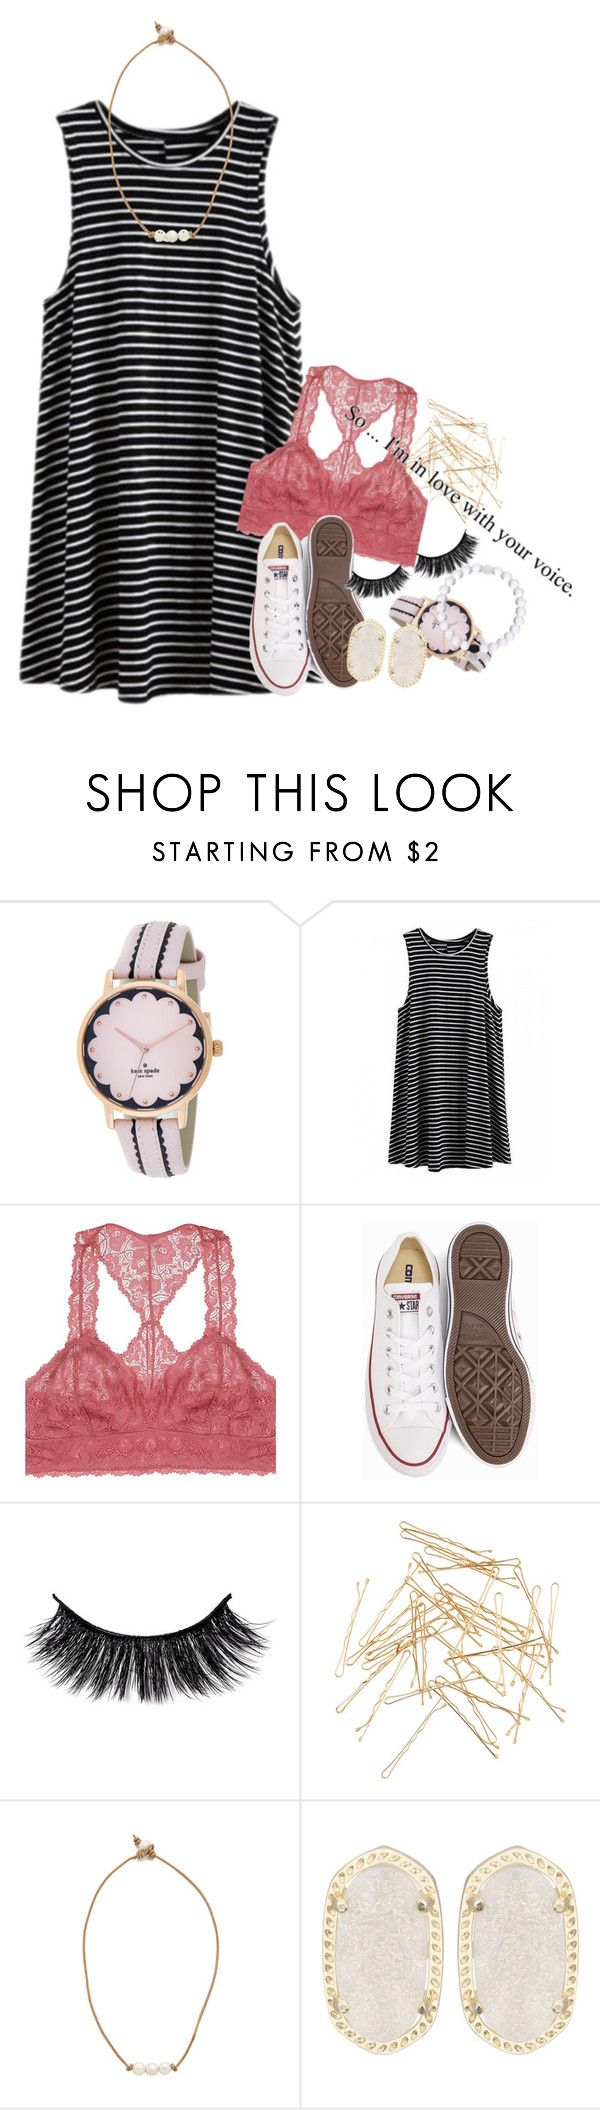 """& all of a sudden, life got super confusing"" by ellaswiftie13 ❤ liked on Polyvore featuring Kate Spade, Youmita, Converse, Monki, Lead and Kendra Scott"